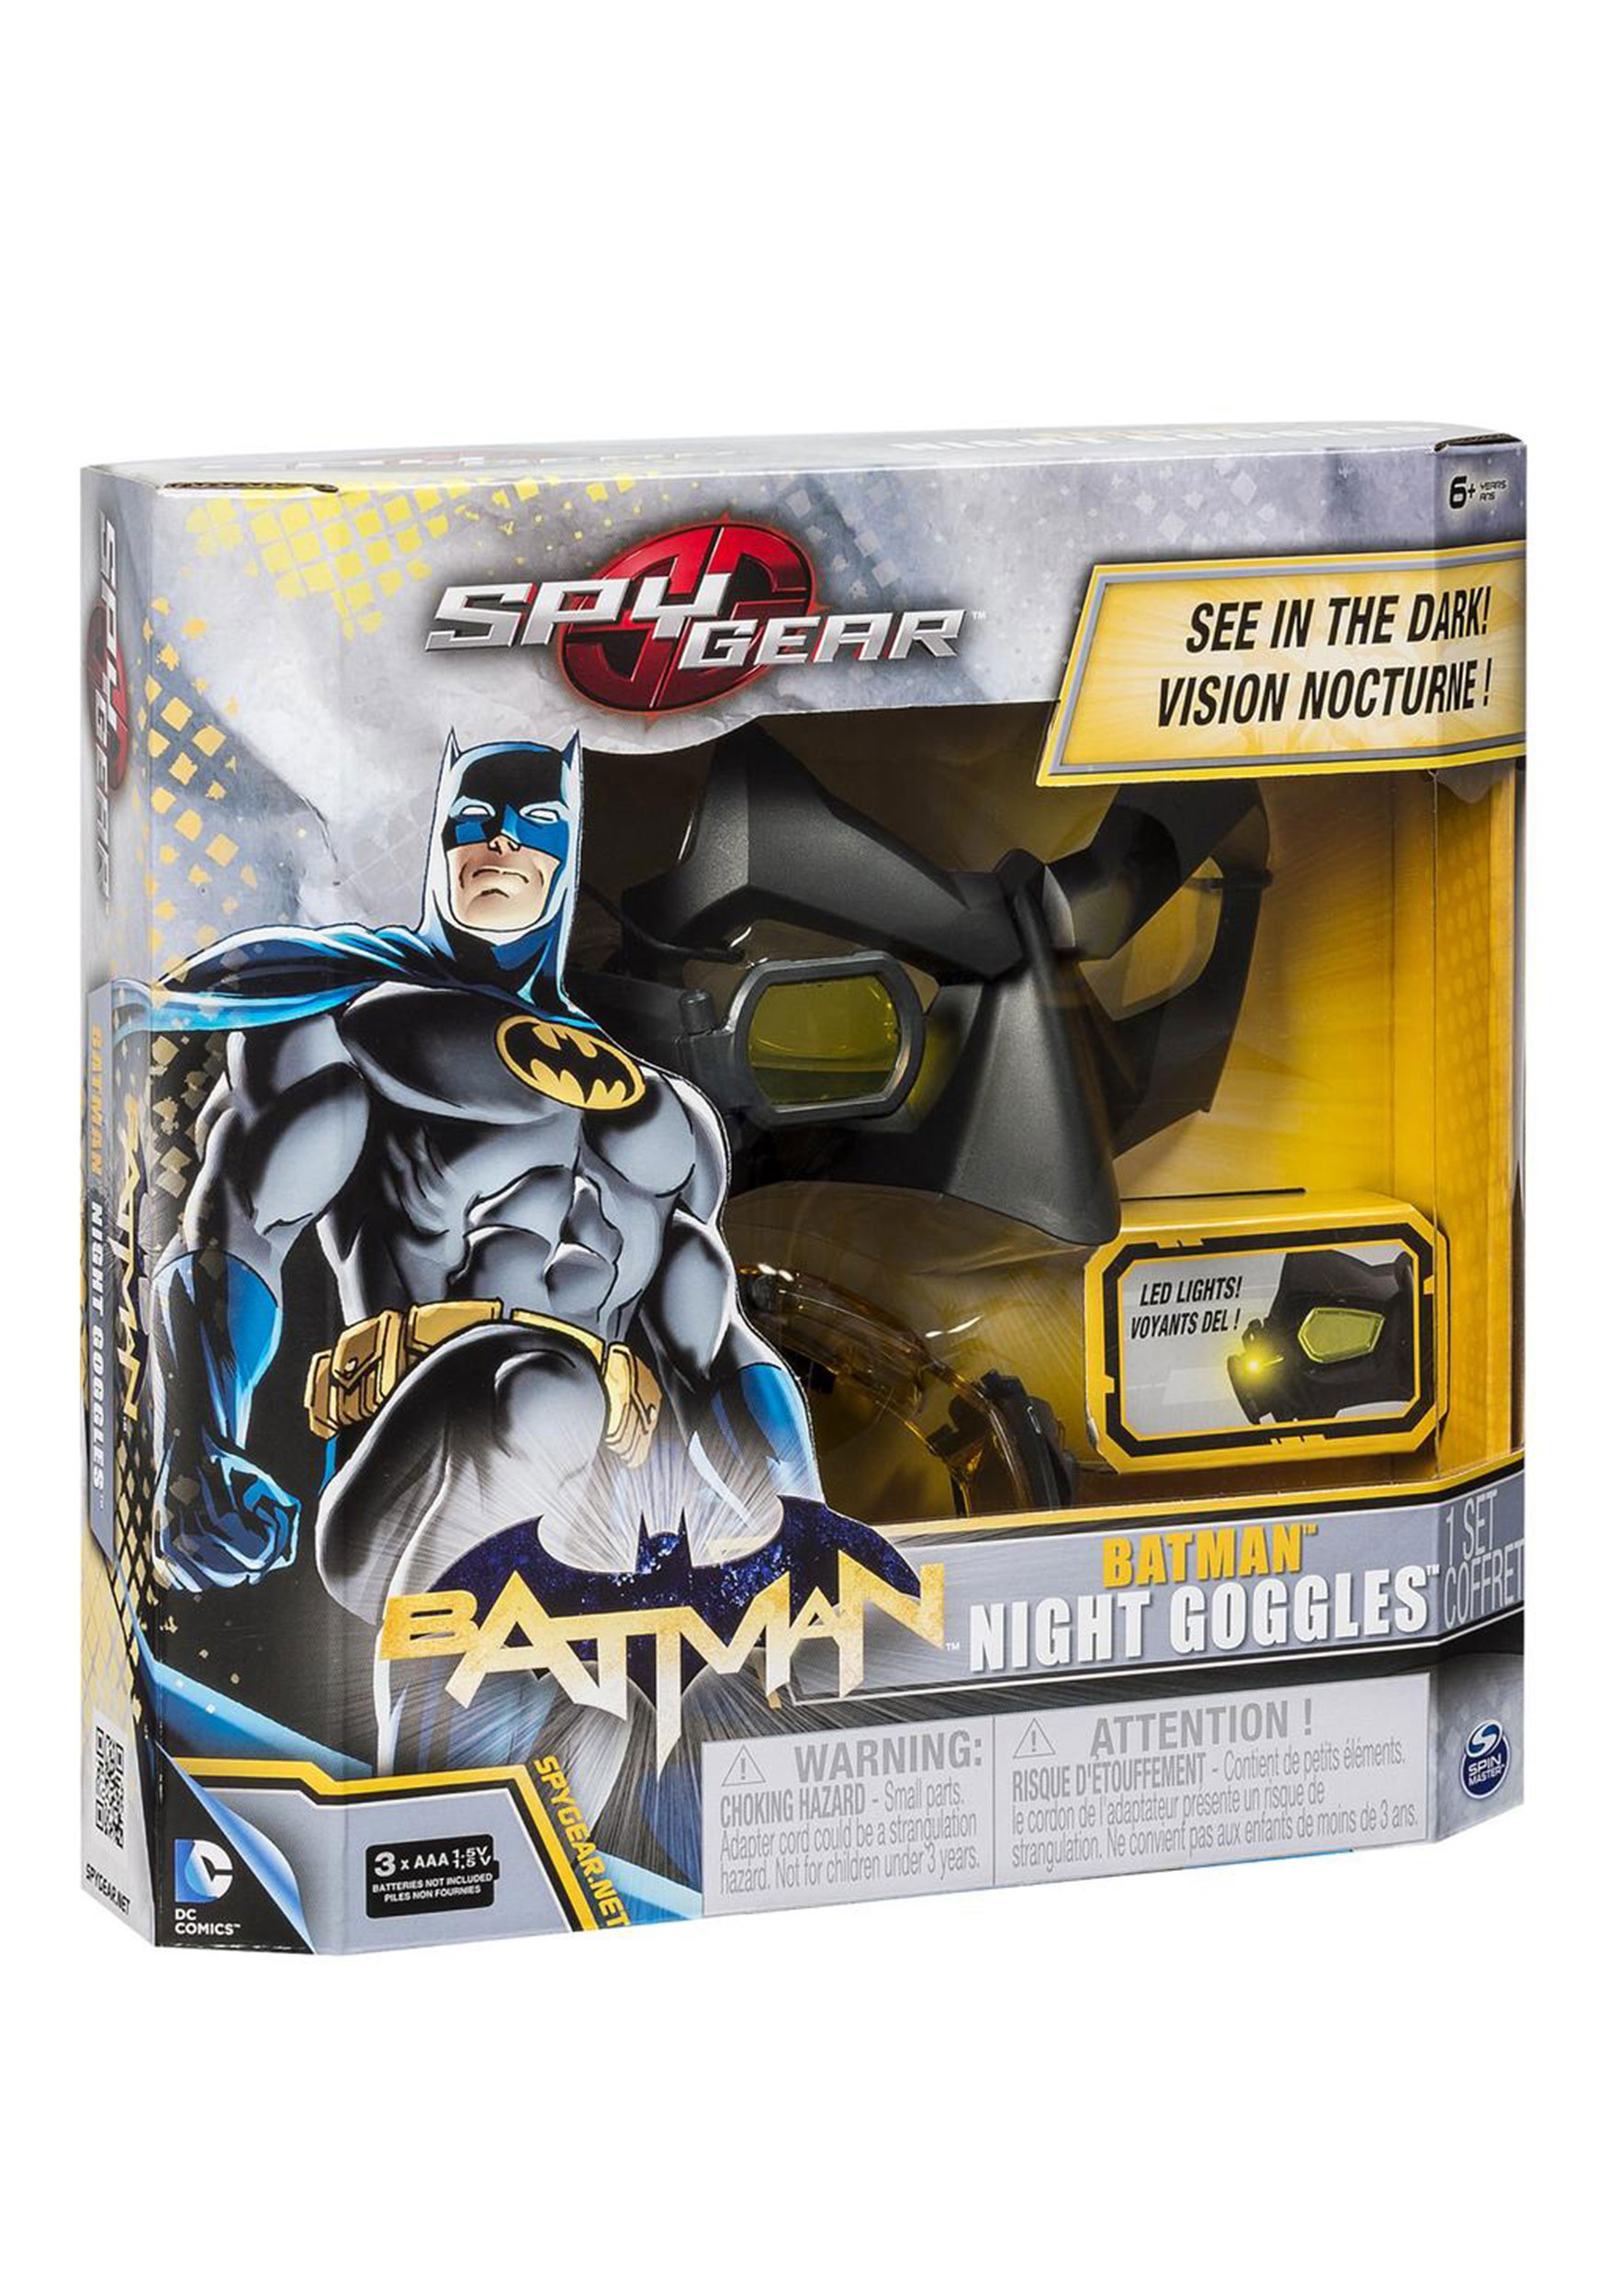 Batman Night Goggle Mask SA6024983